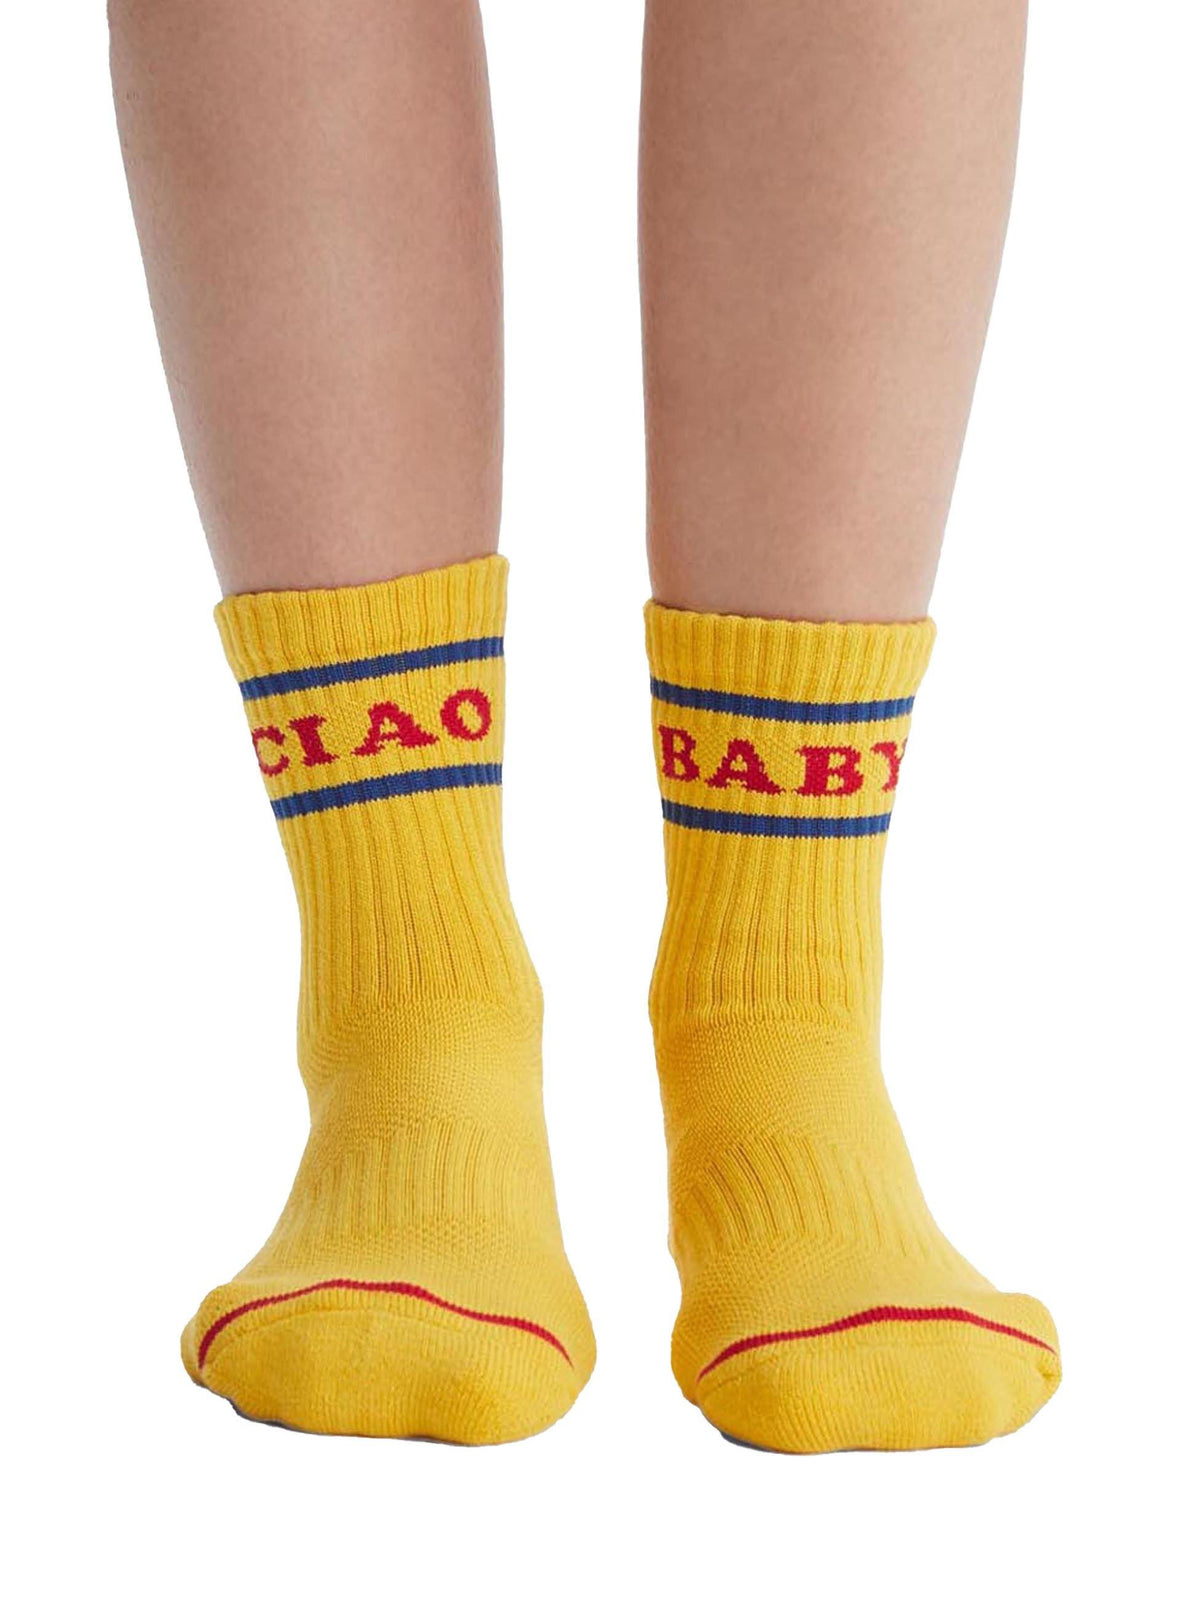 Ciao Baby Socks - Wheat Boutique